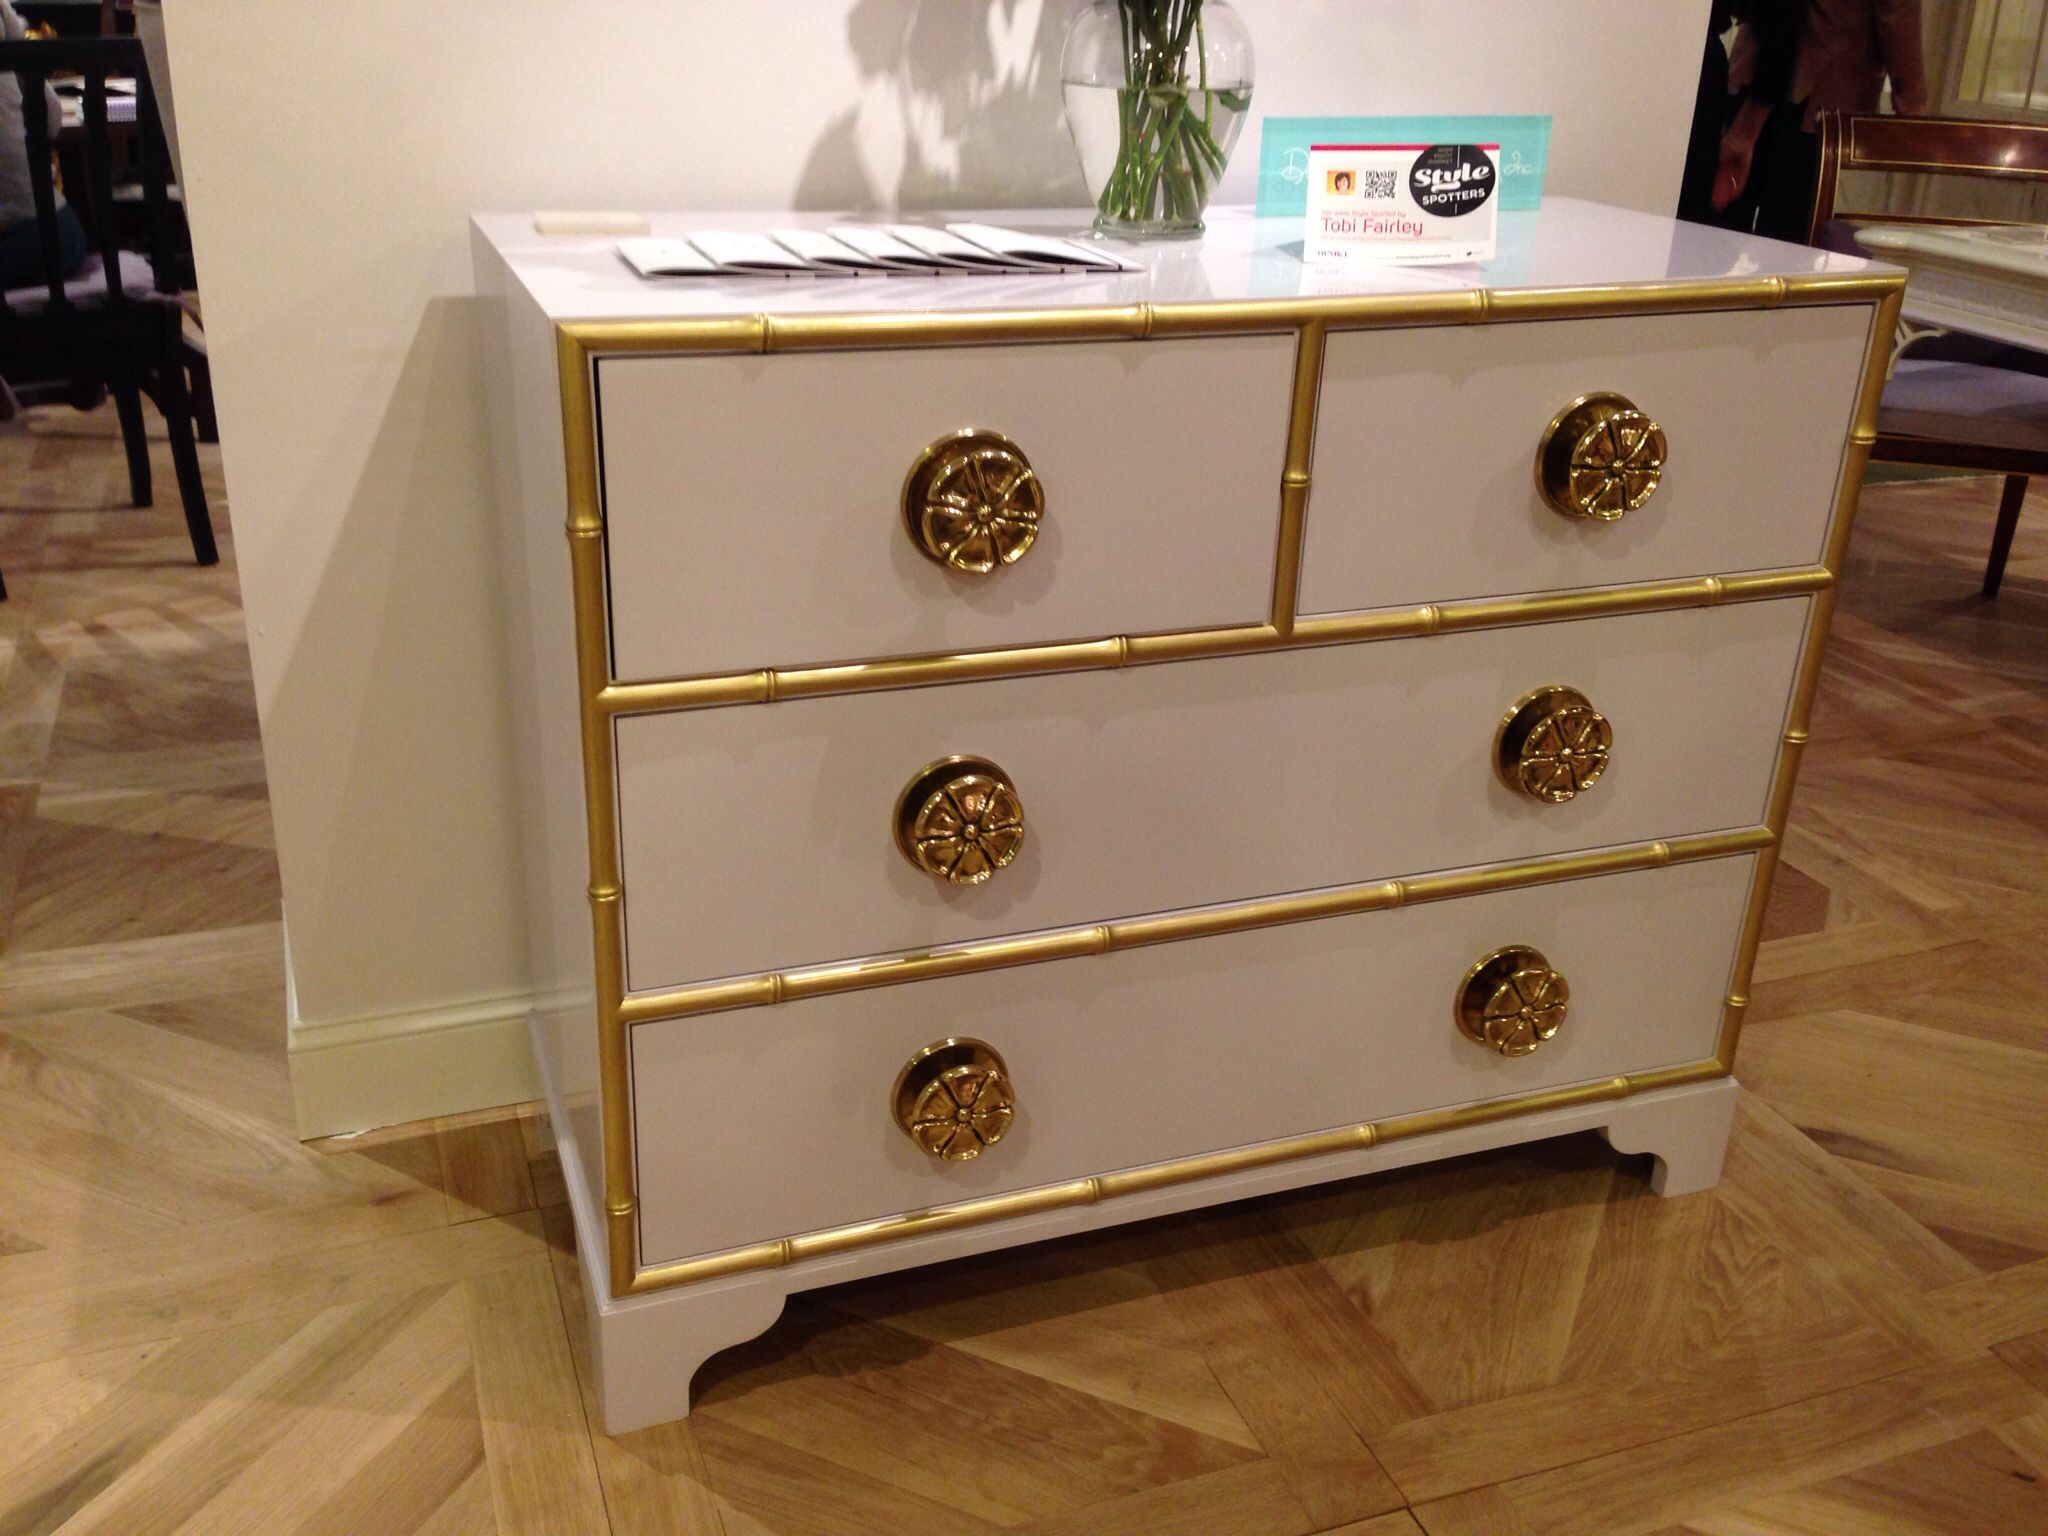 Stunning Lilac And Gold Chest From @Kindel Furnitureu0027s Dorothy Draper  Collection #hpmkt In Interhall